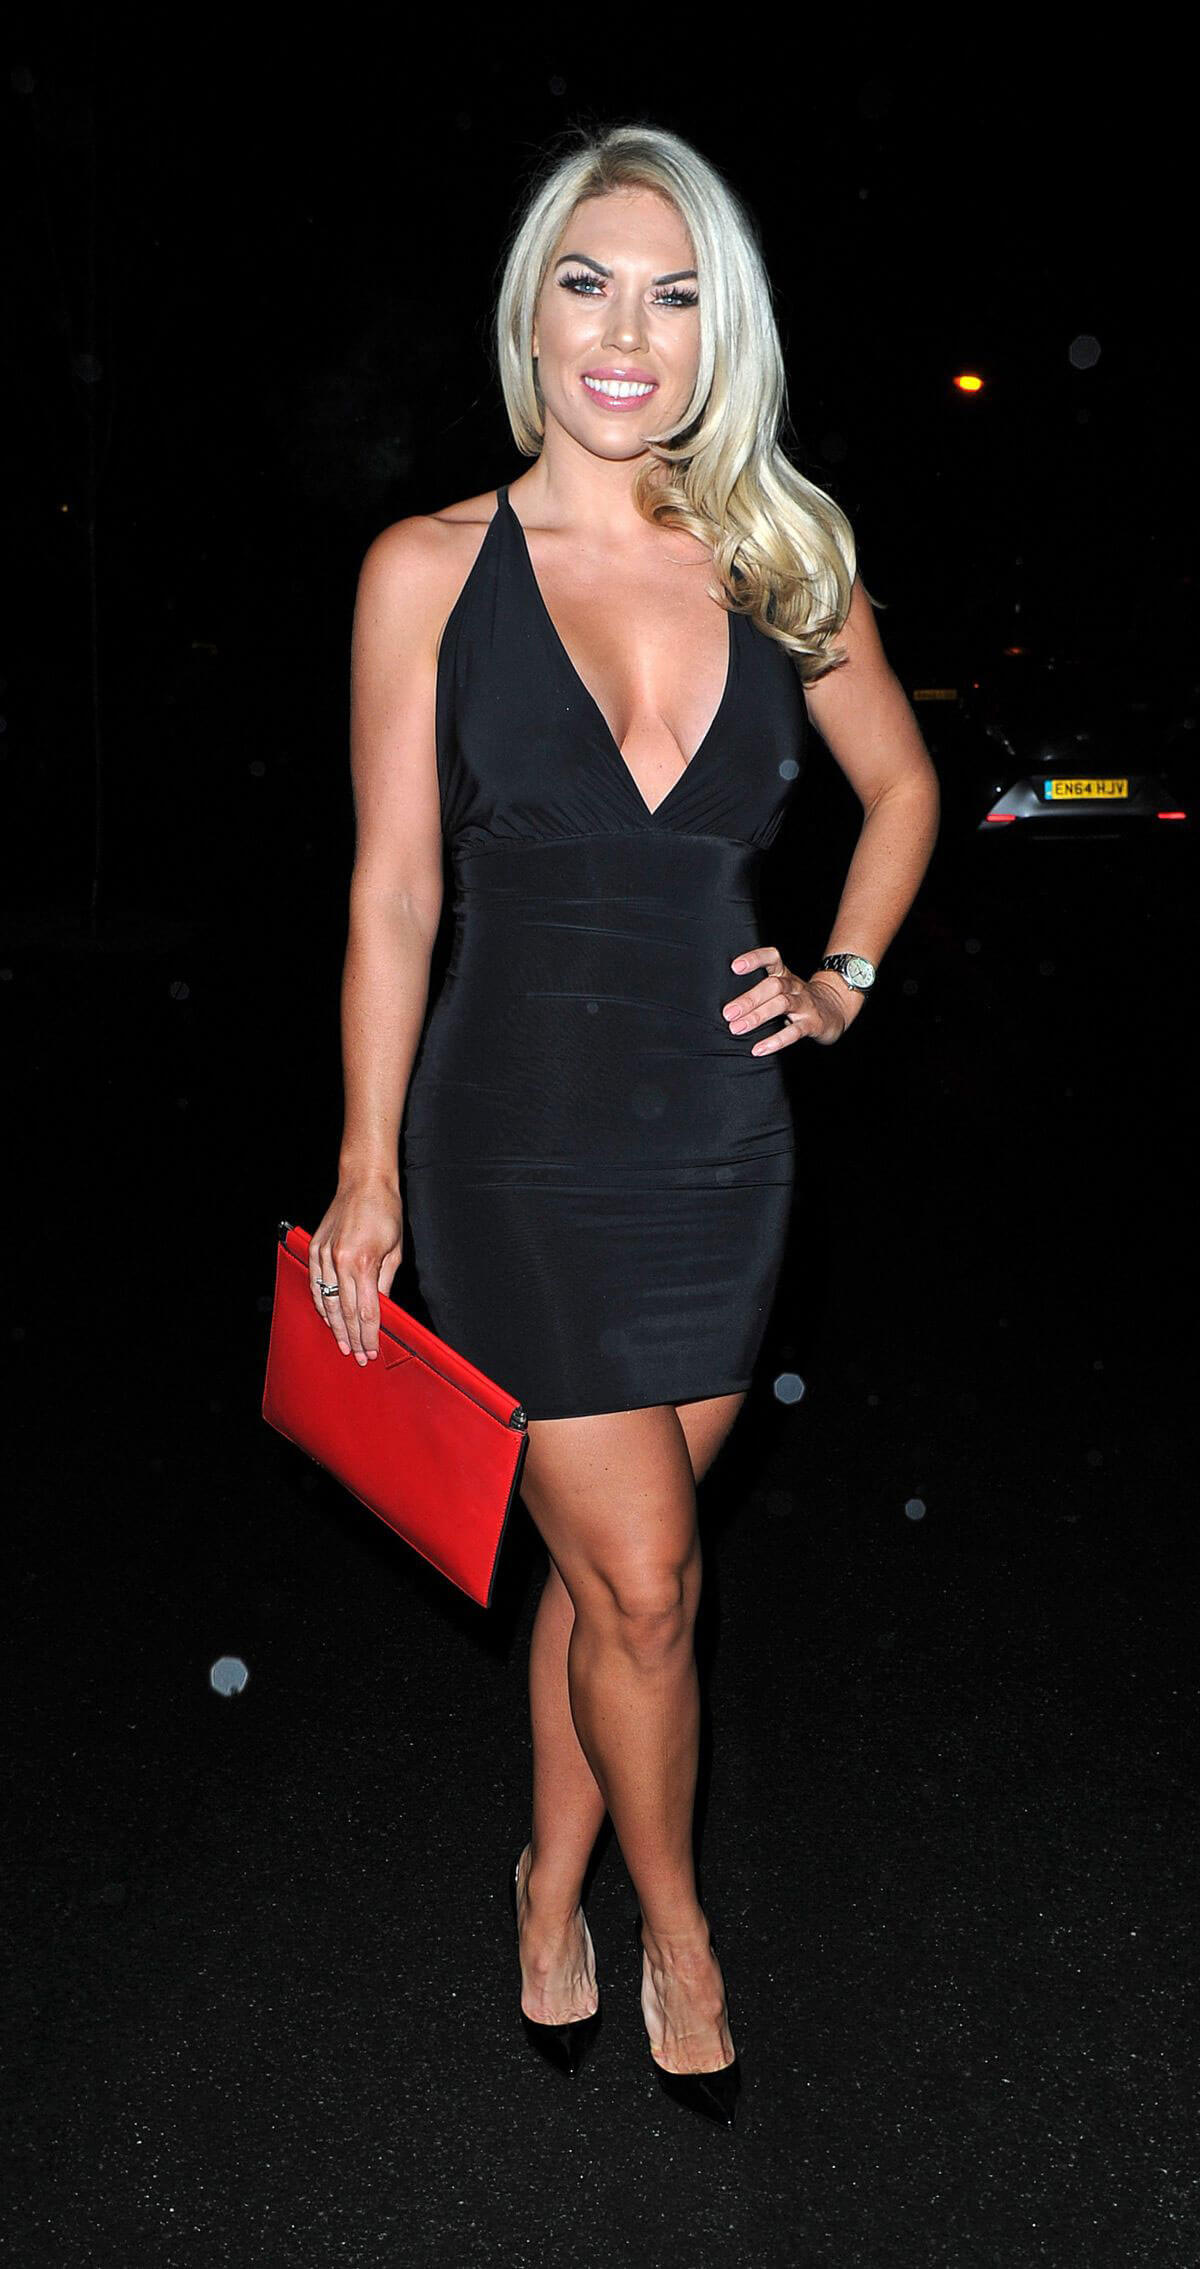 Frankie Essex Arrives at STK Restaurant in London